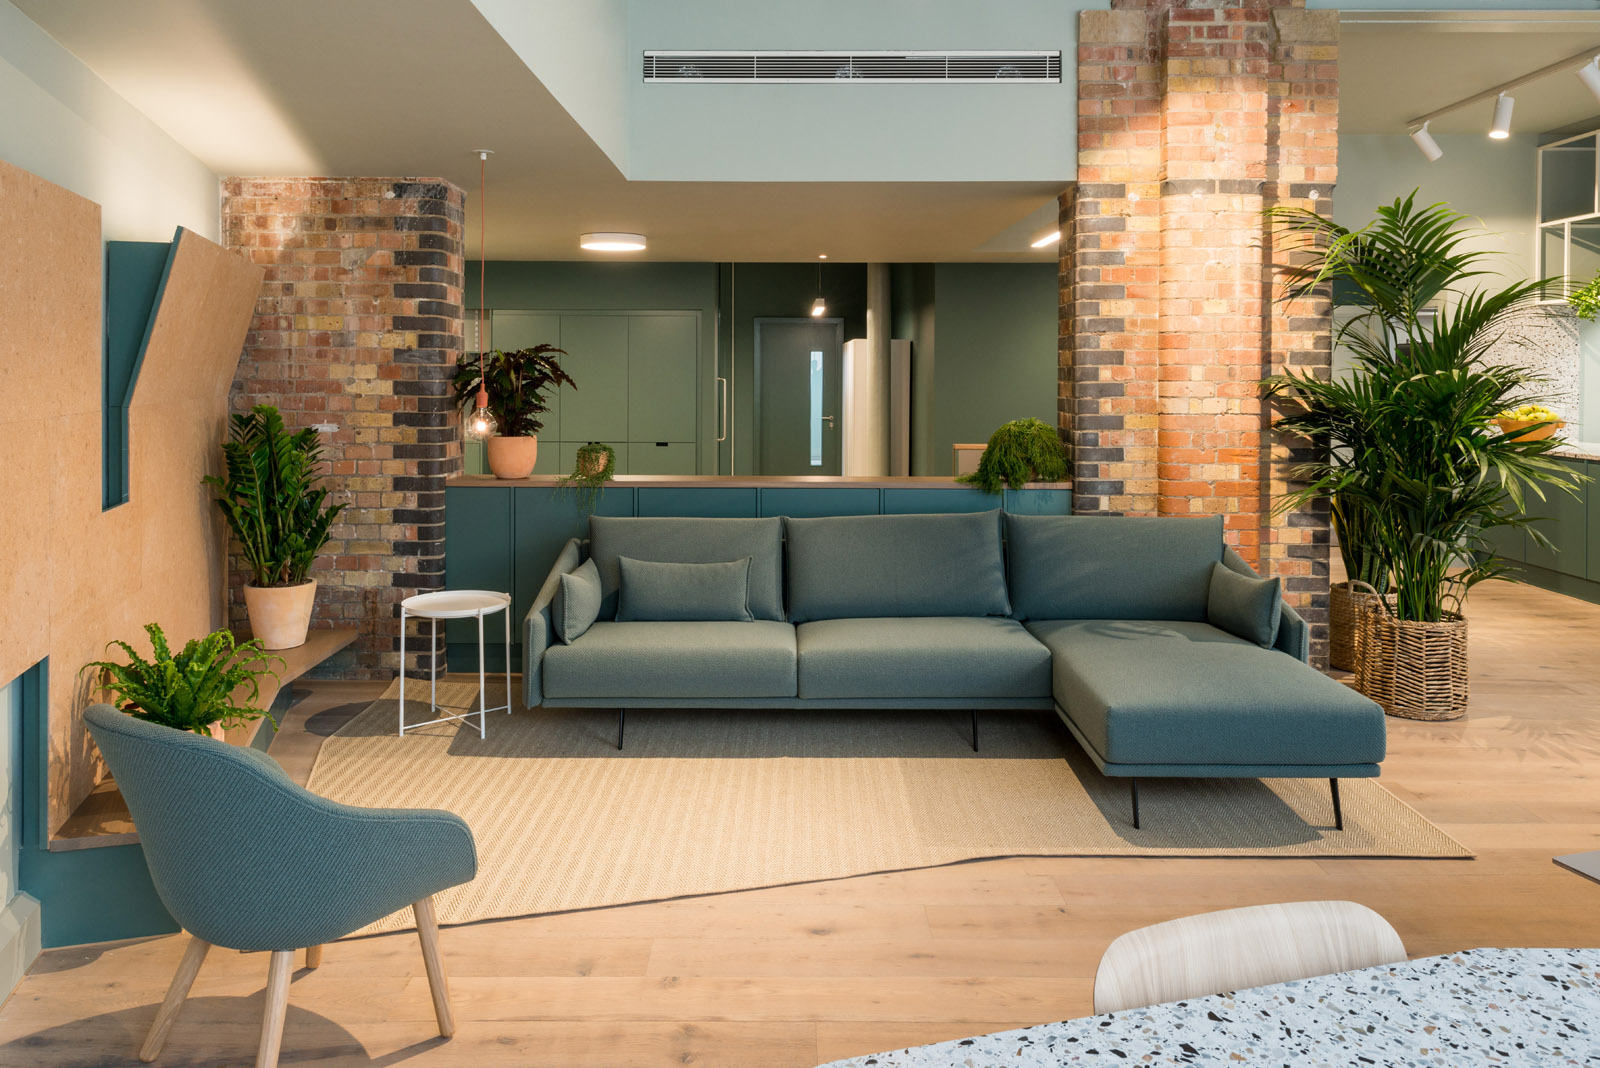 Projects_Office_QUEENS_PARK_LOUNGE_APERTURE_credit-frenchandtye.jpg